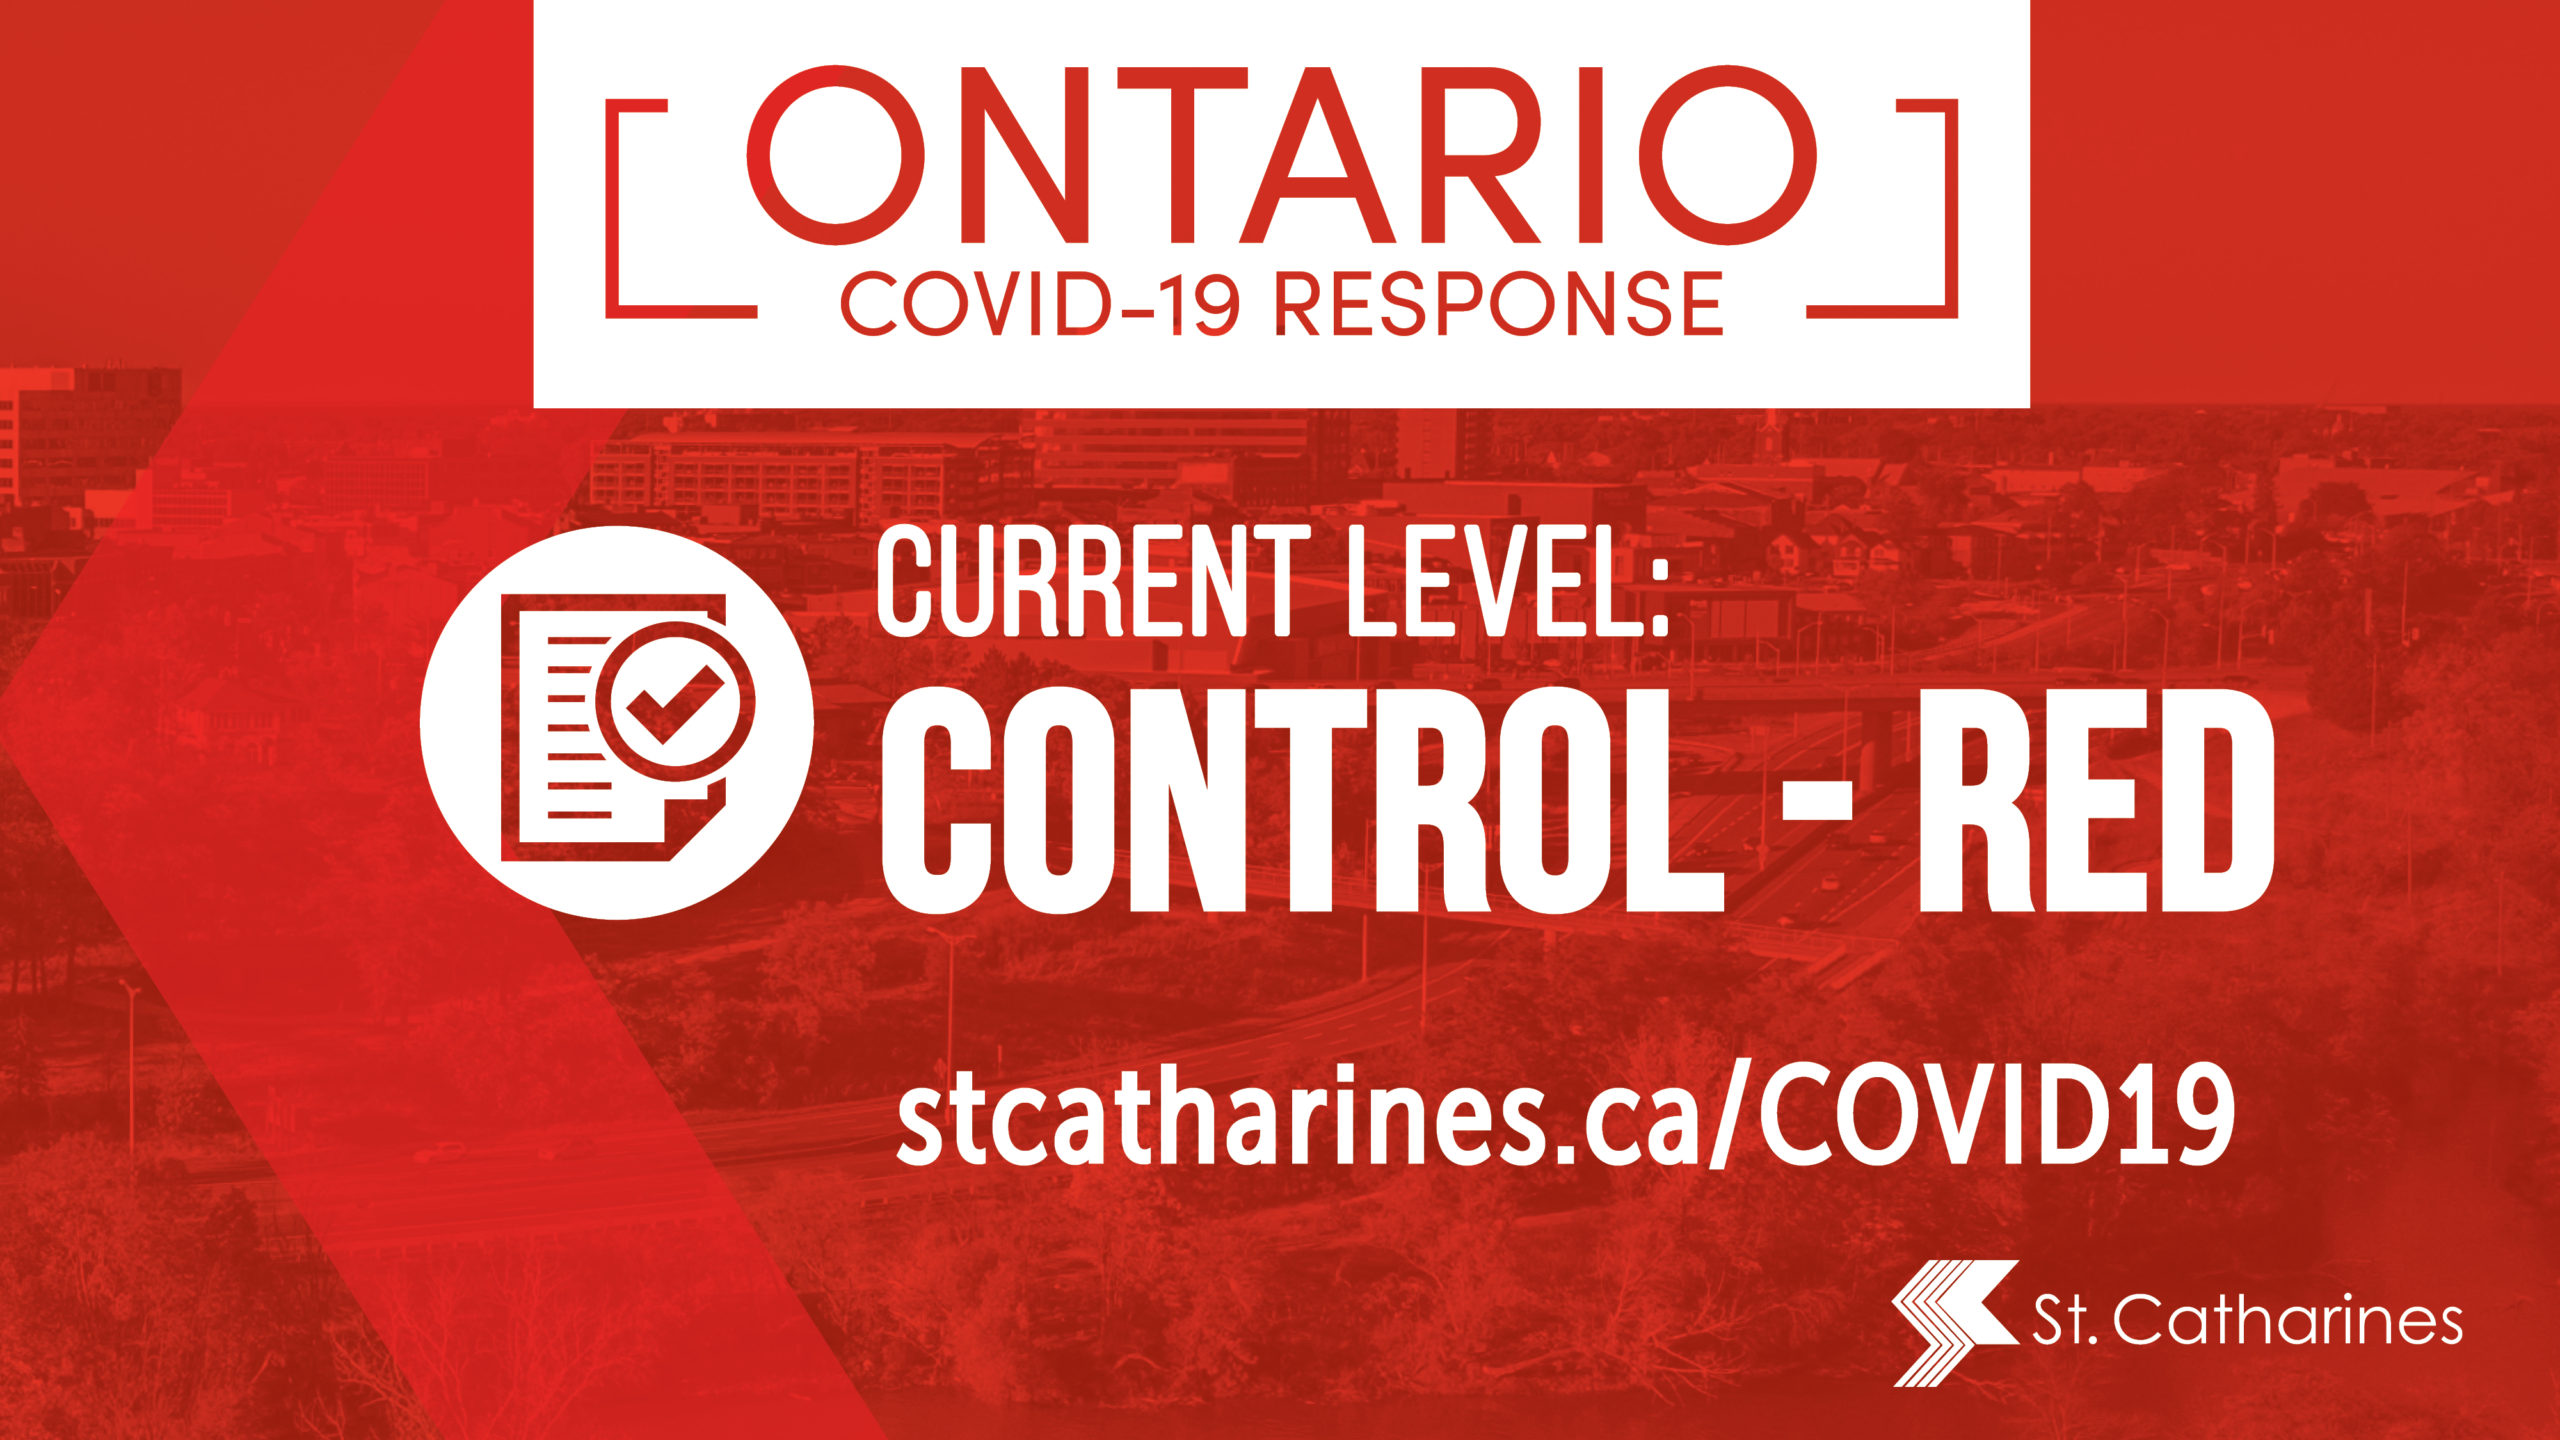 Statement from Mayor Sendzik on Niagara moving into RED category of provincial COVID-19 response framework